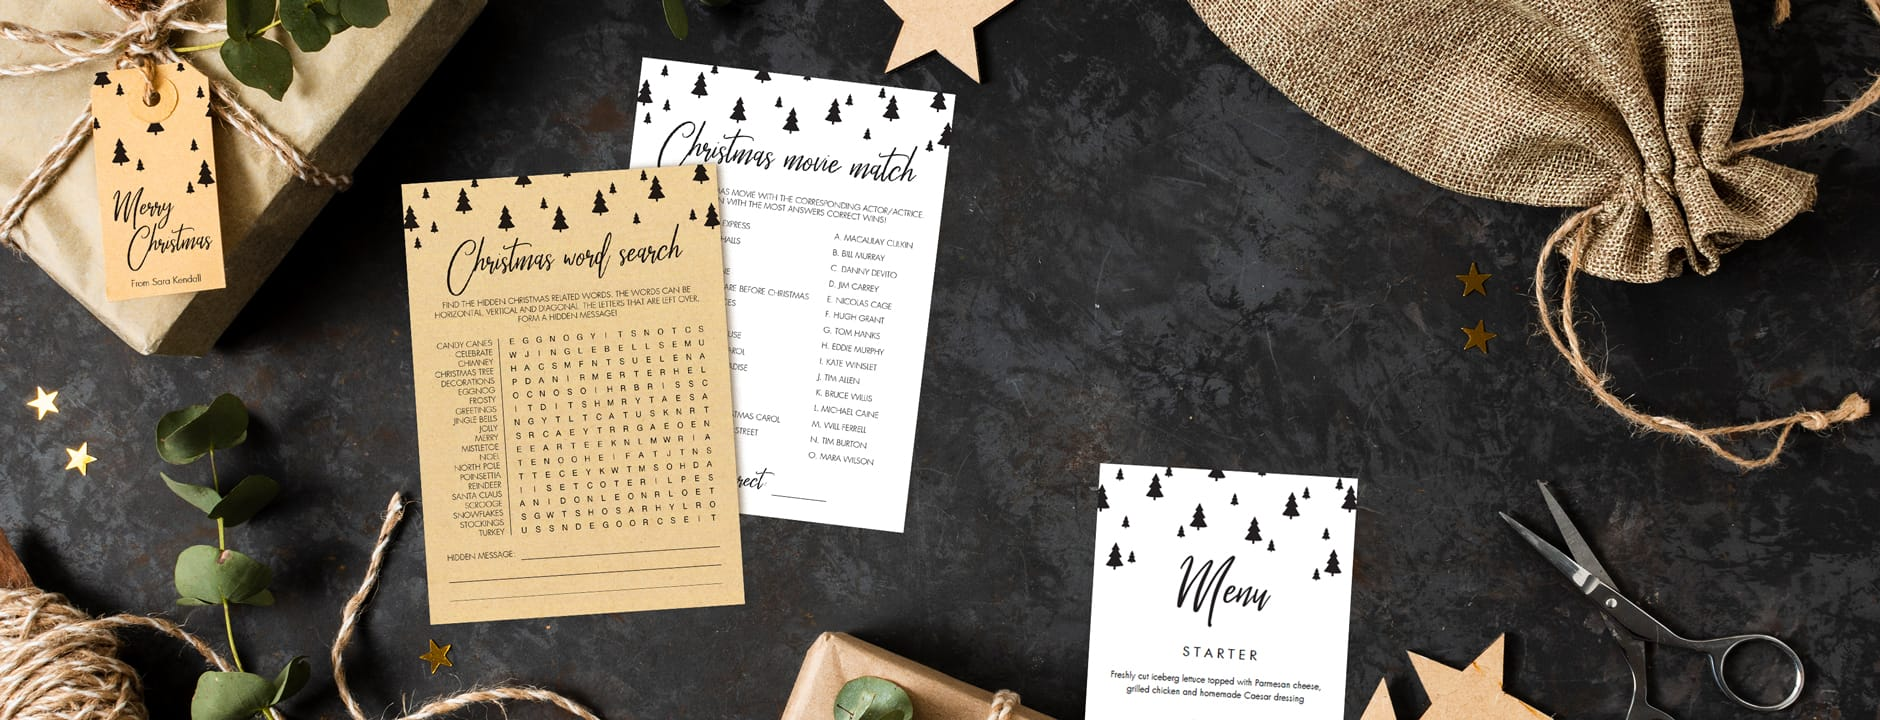 Christmas Party Games and Decorations to print at home